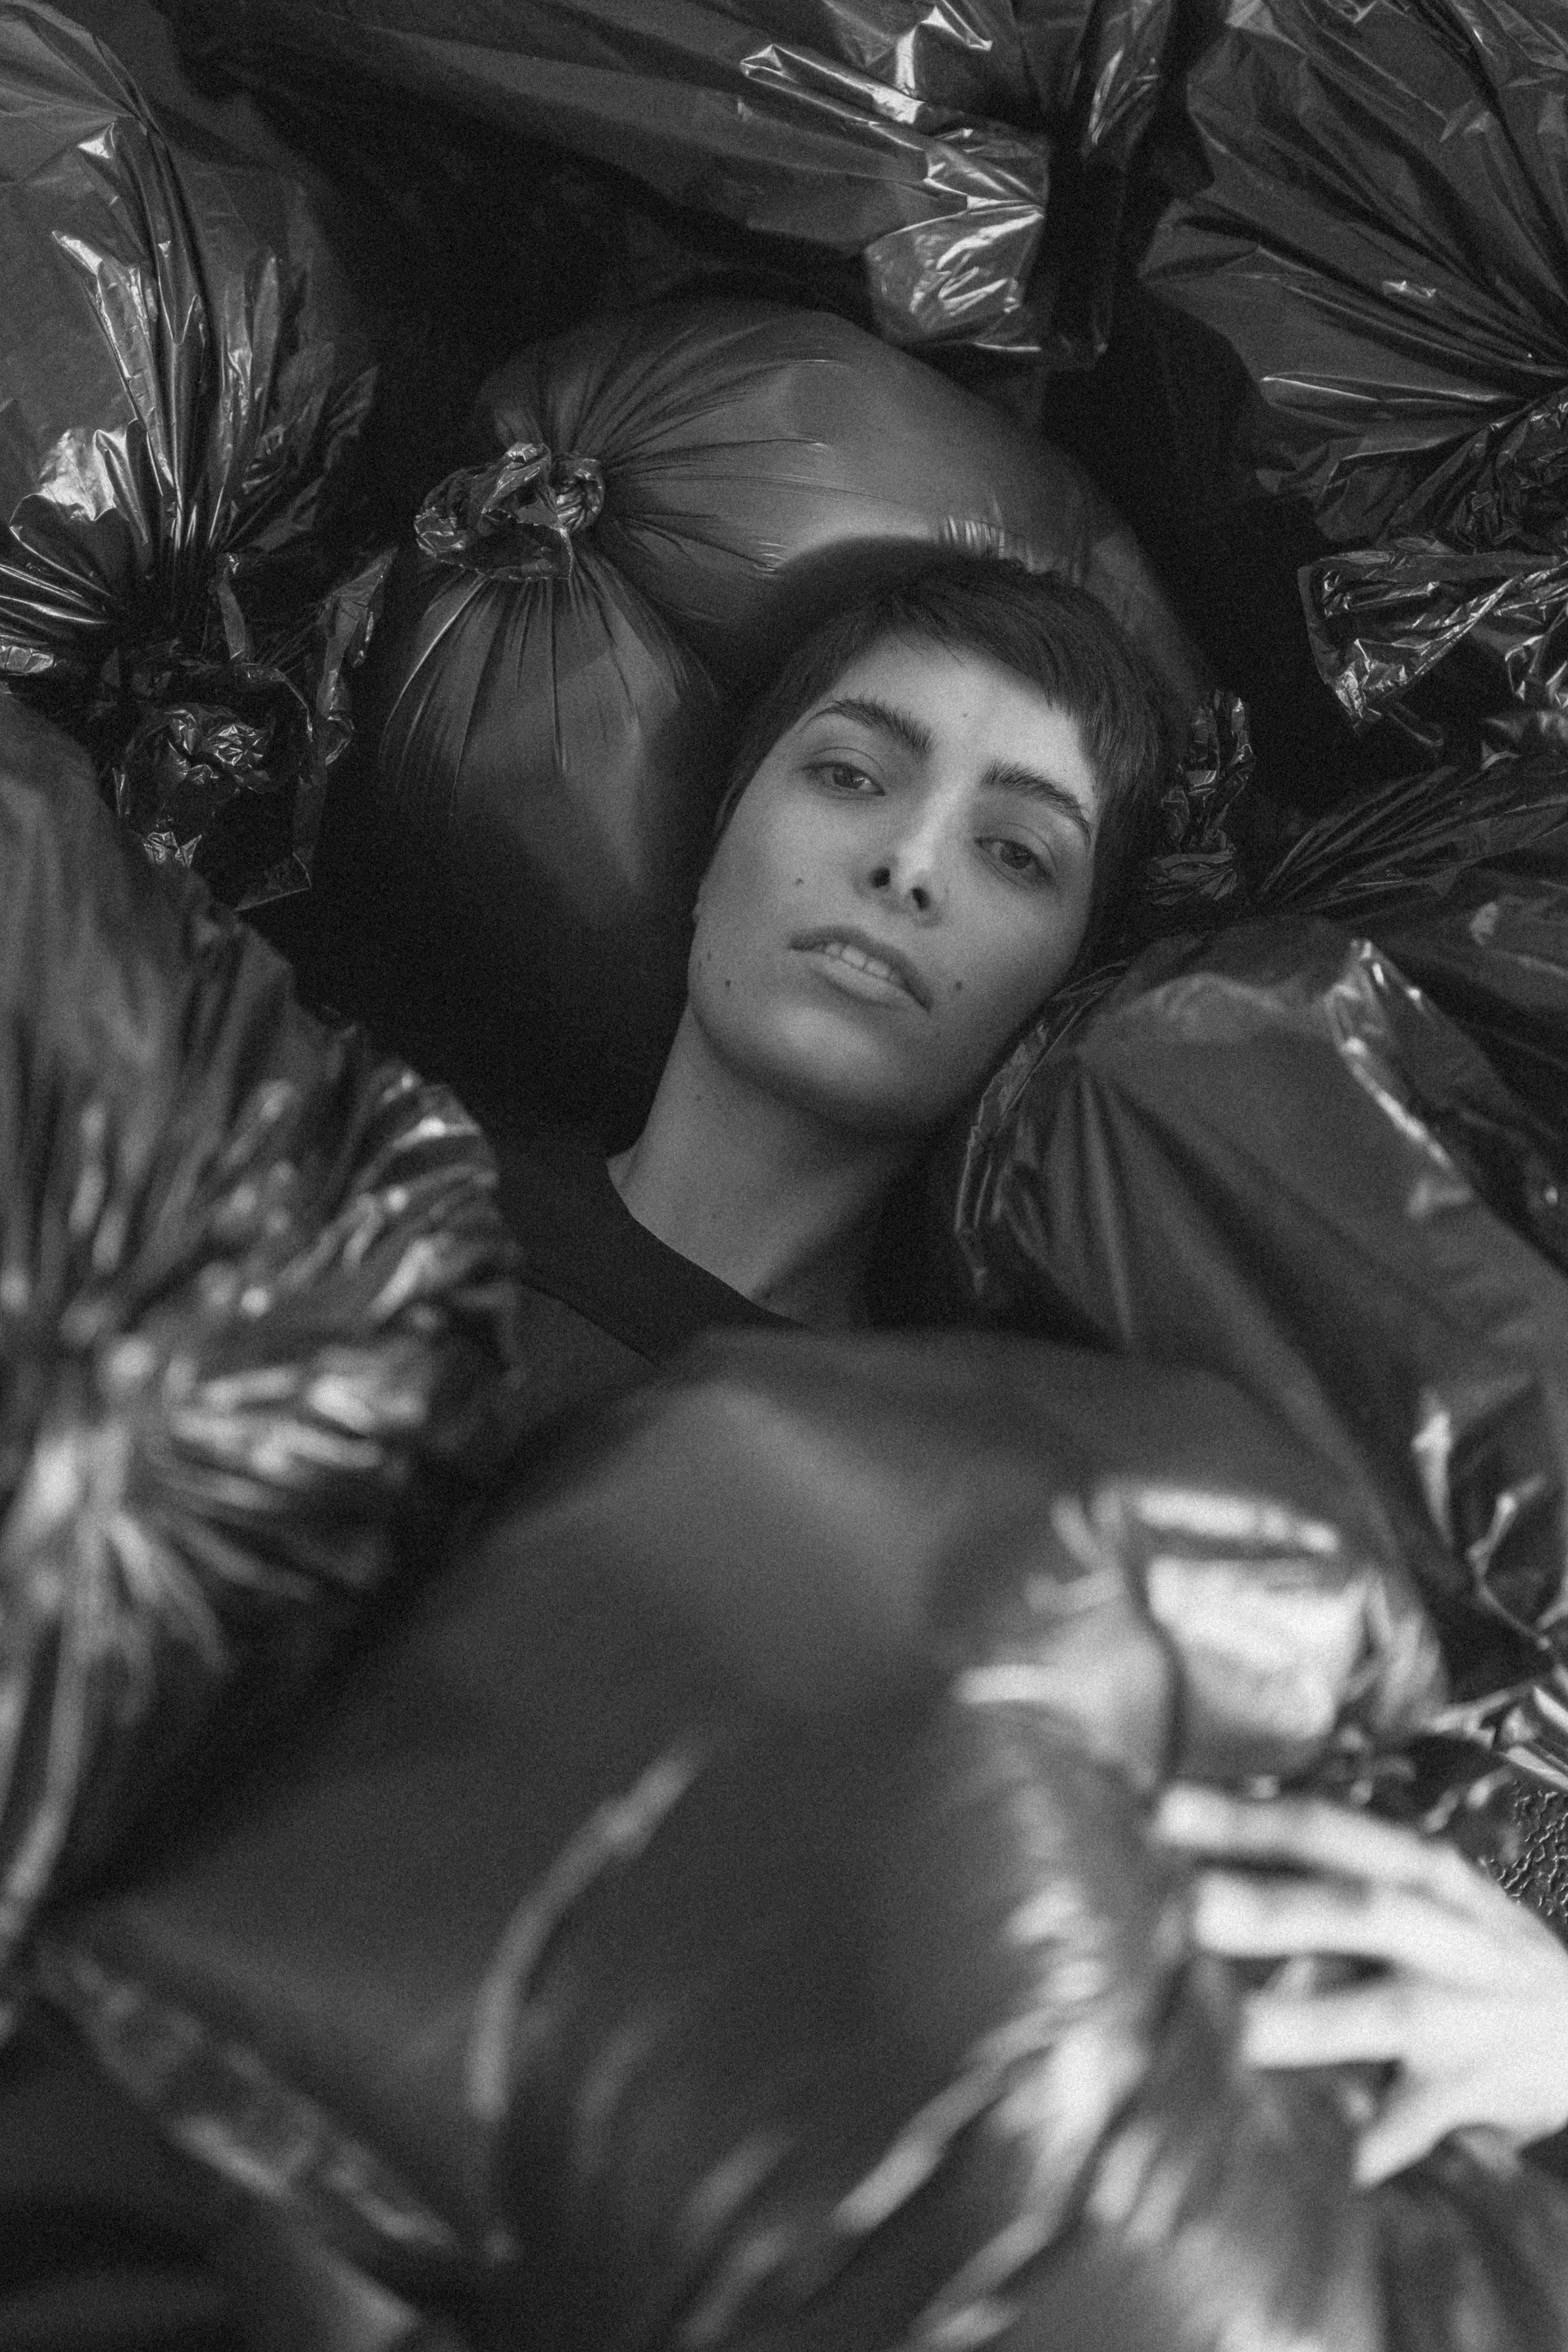 Grayscale Photo of Female Surrounded by Black Plastic Bags